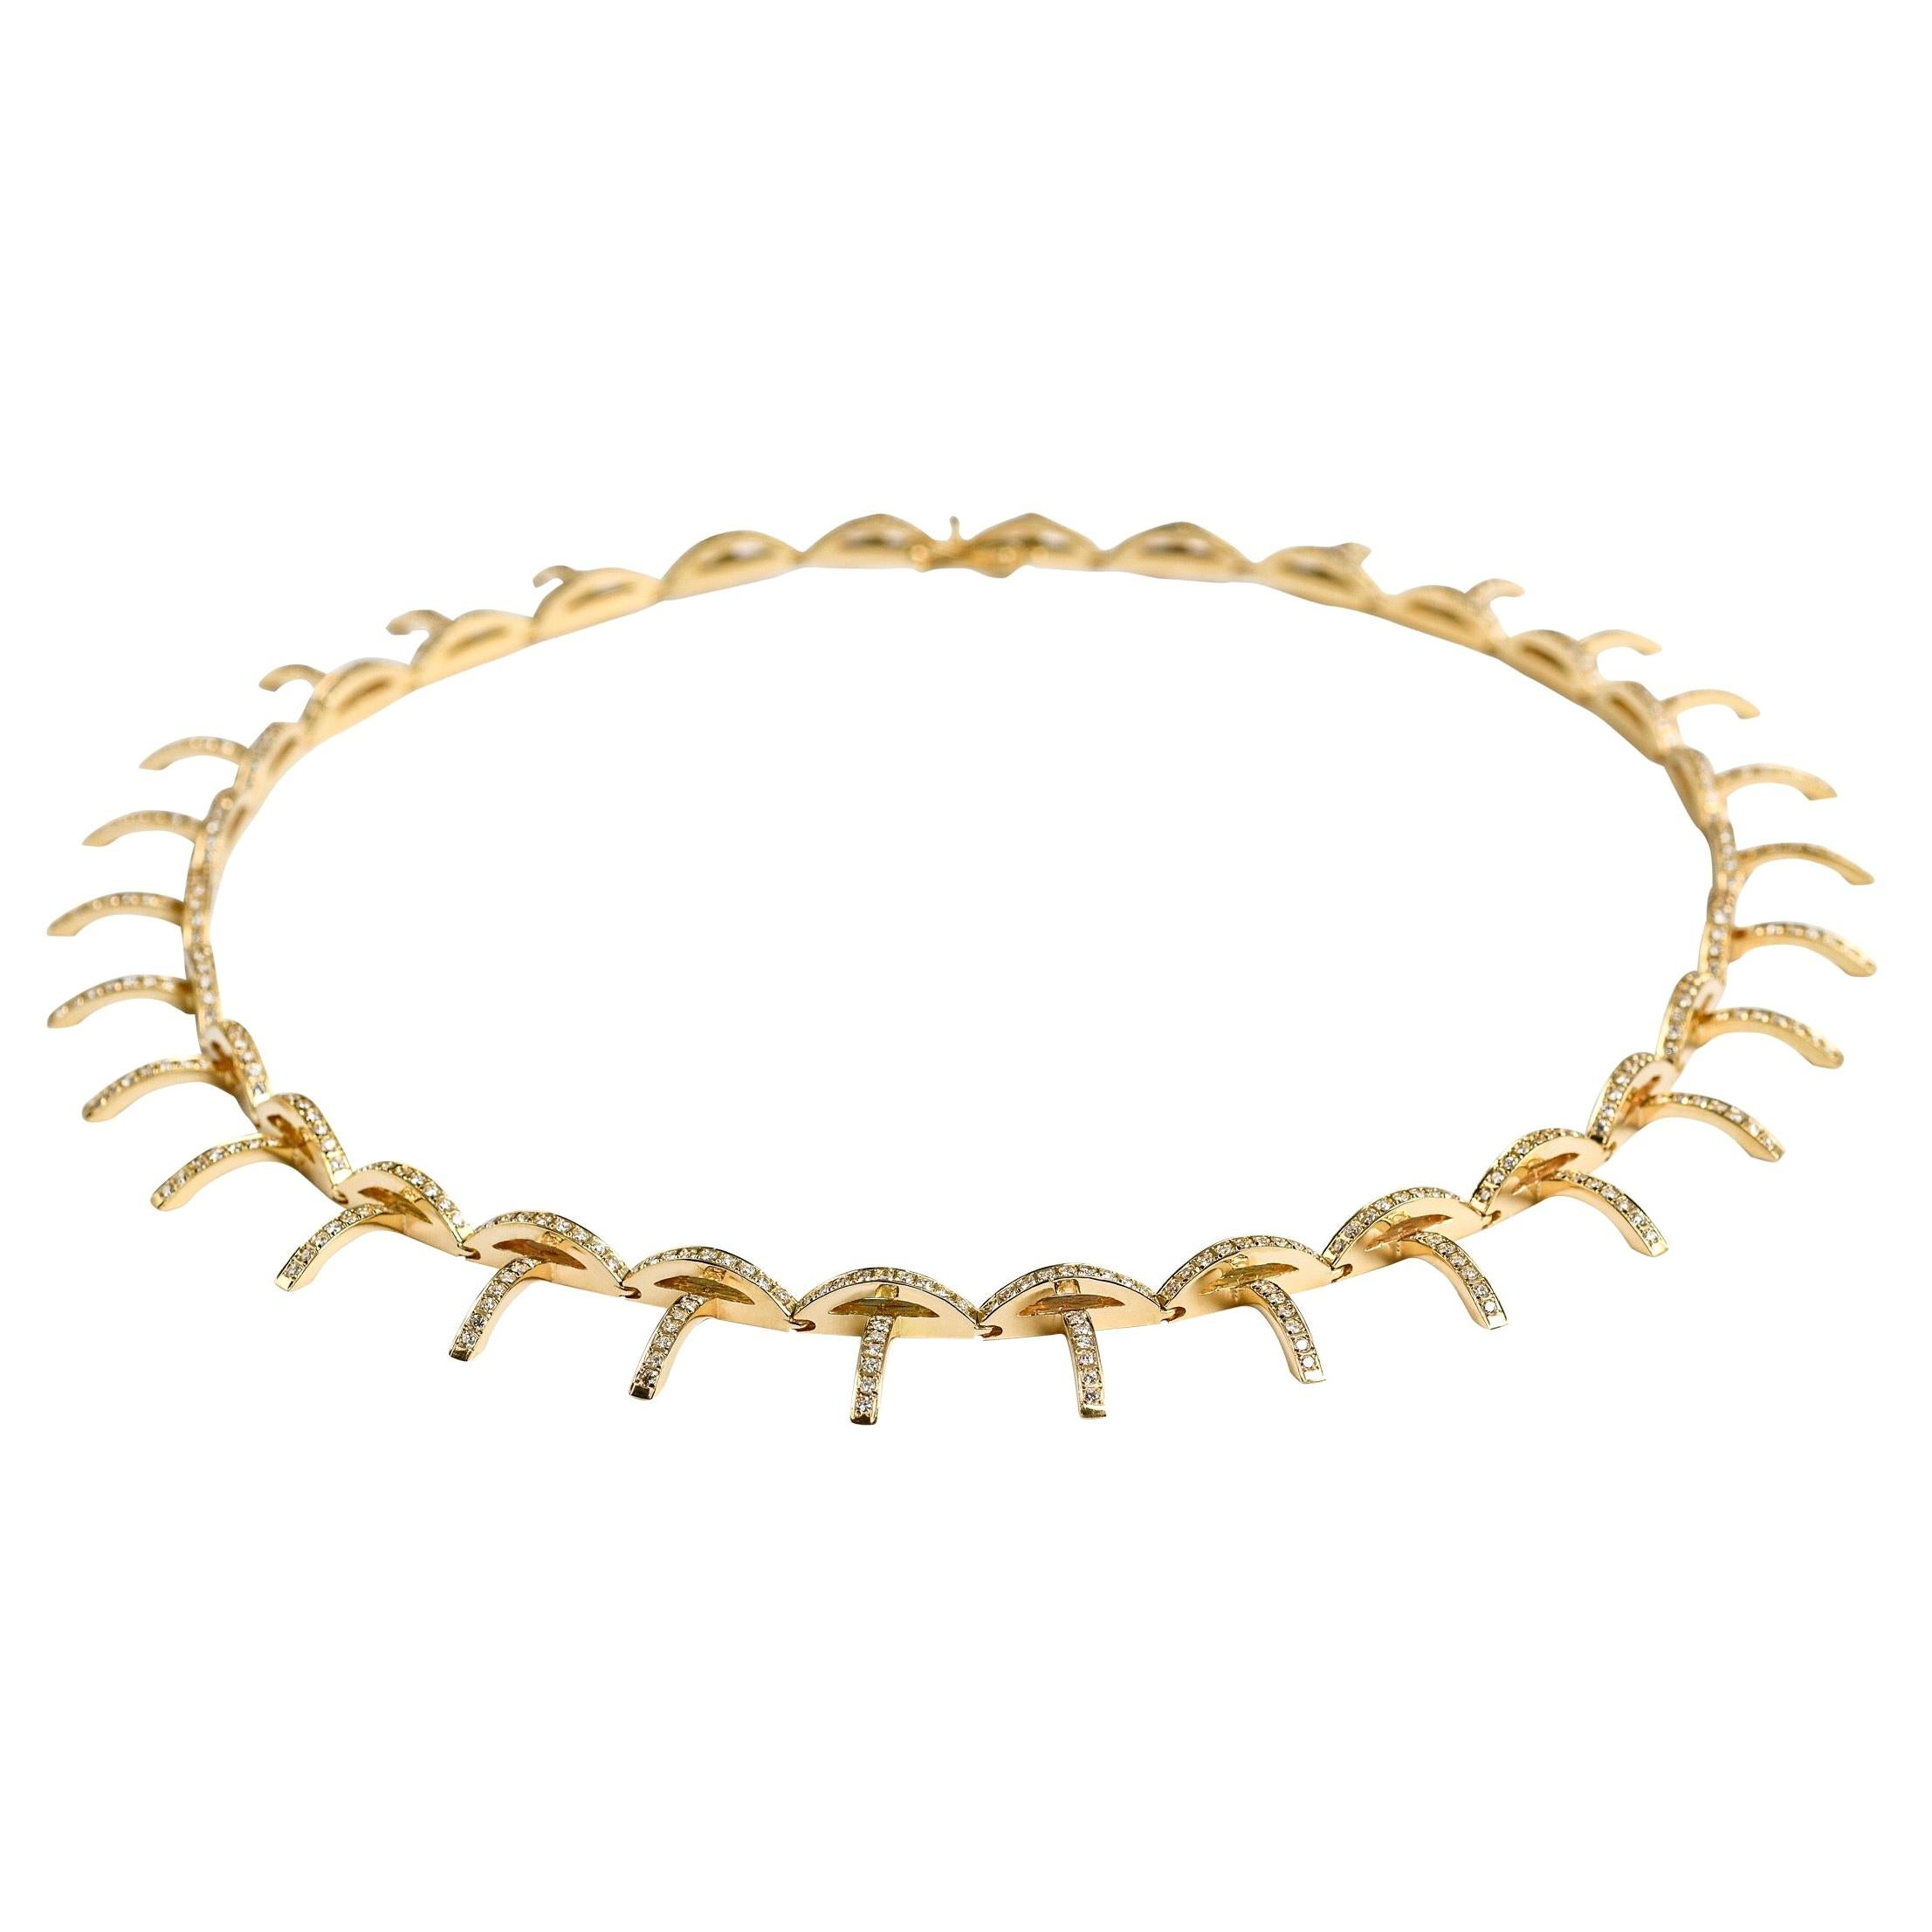 Contemporary 18K Gold and White Diamond Articulated Necklace, Diamond Necklace